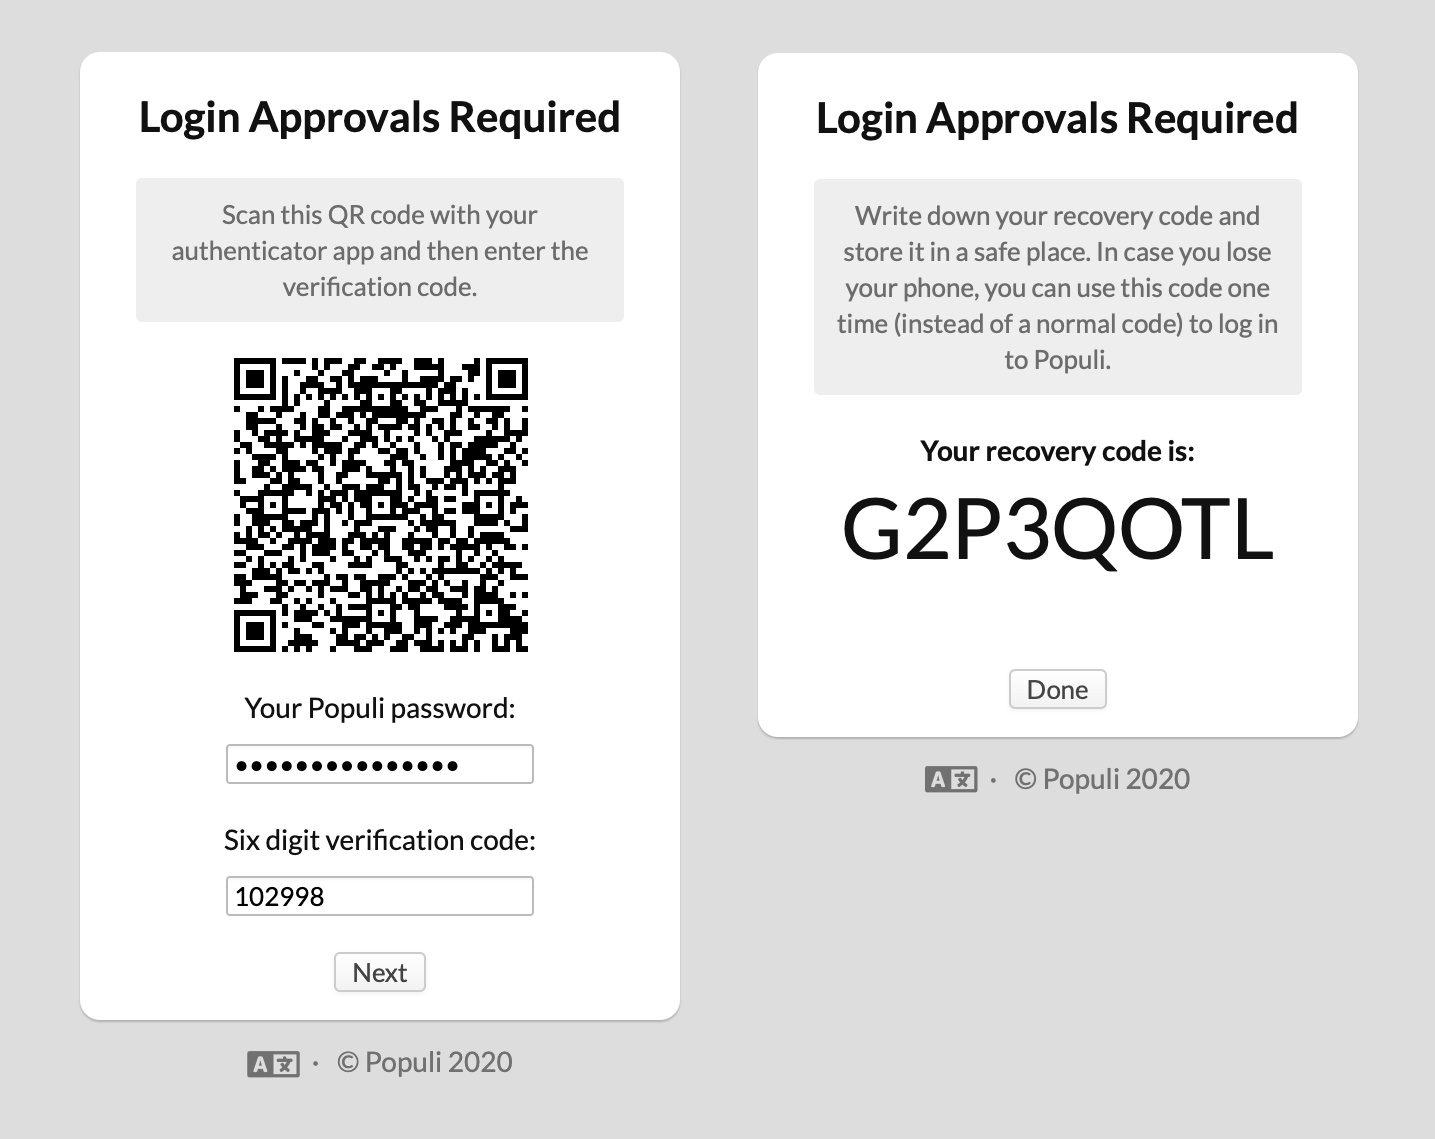 Setting up login approvals in Populi